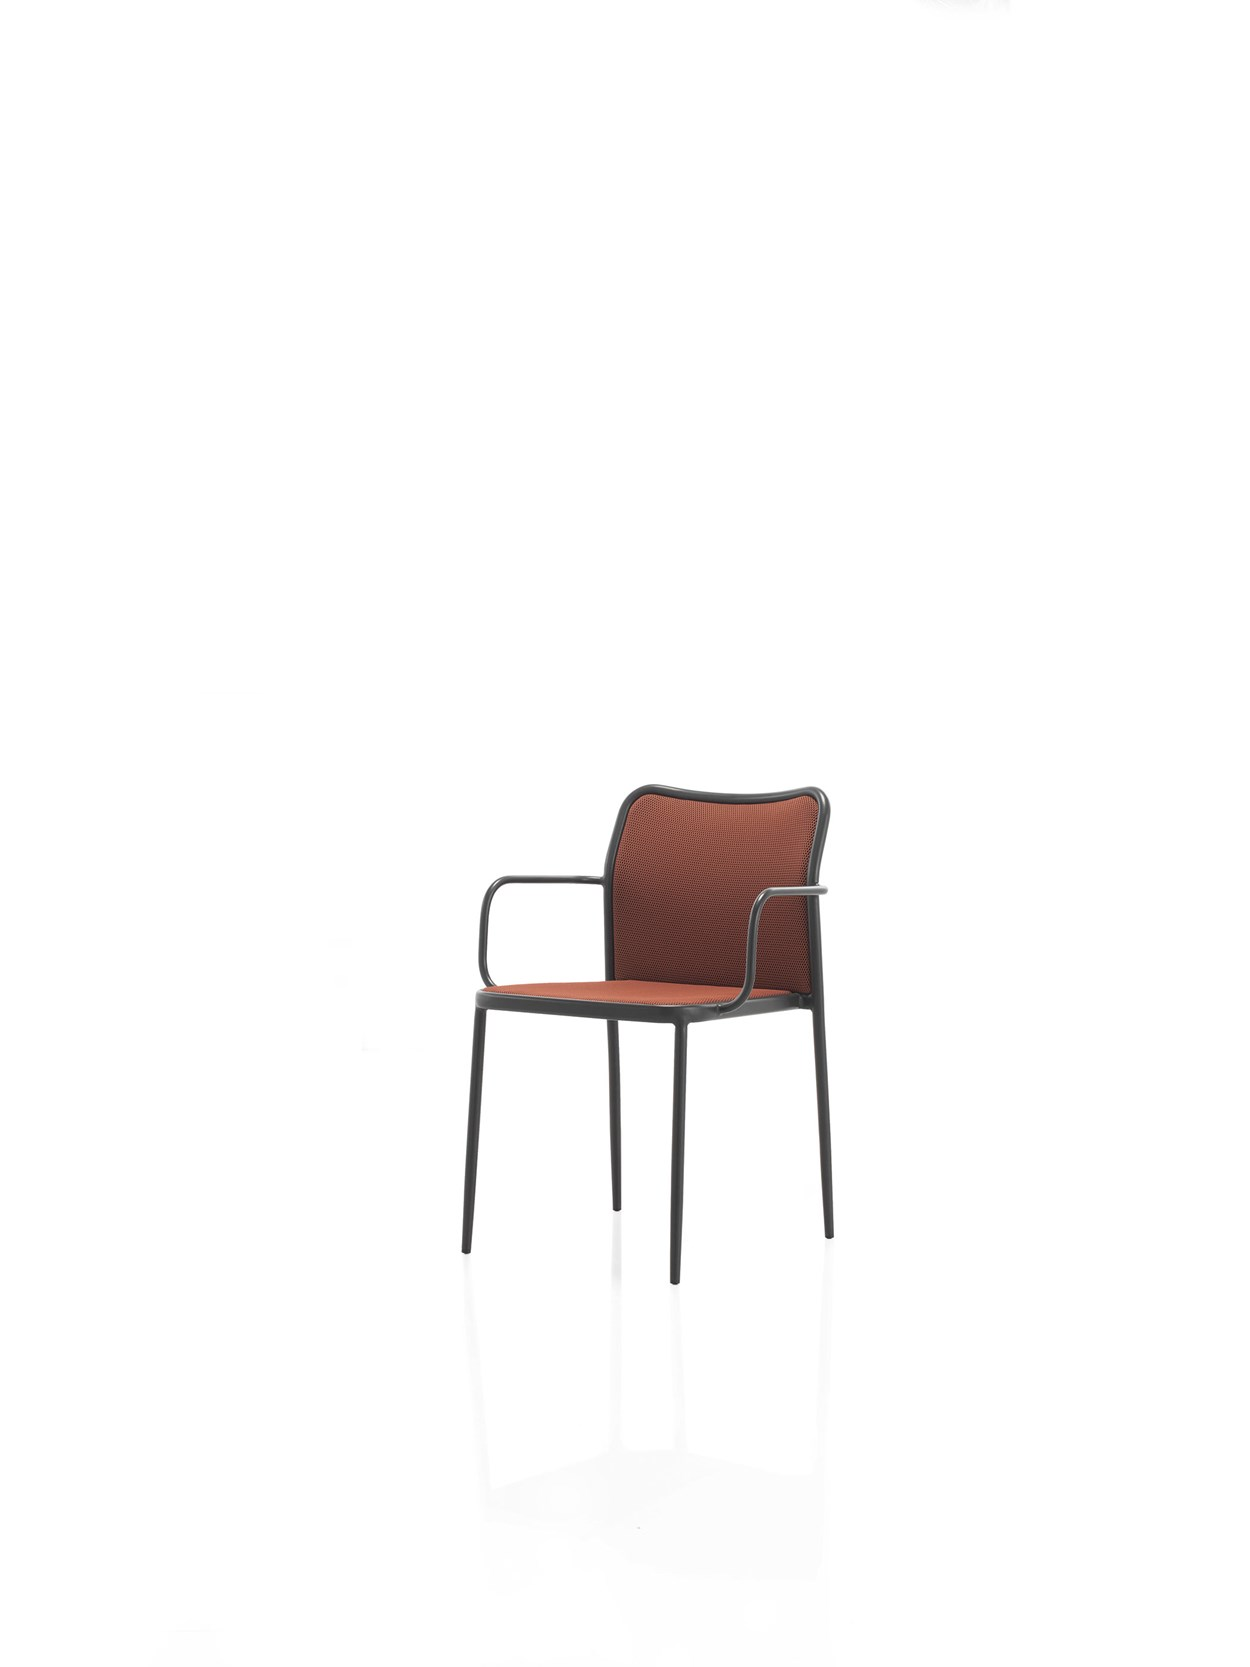 135-expormim-senso_chairs-outdoor.jpg